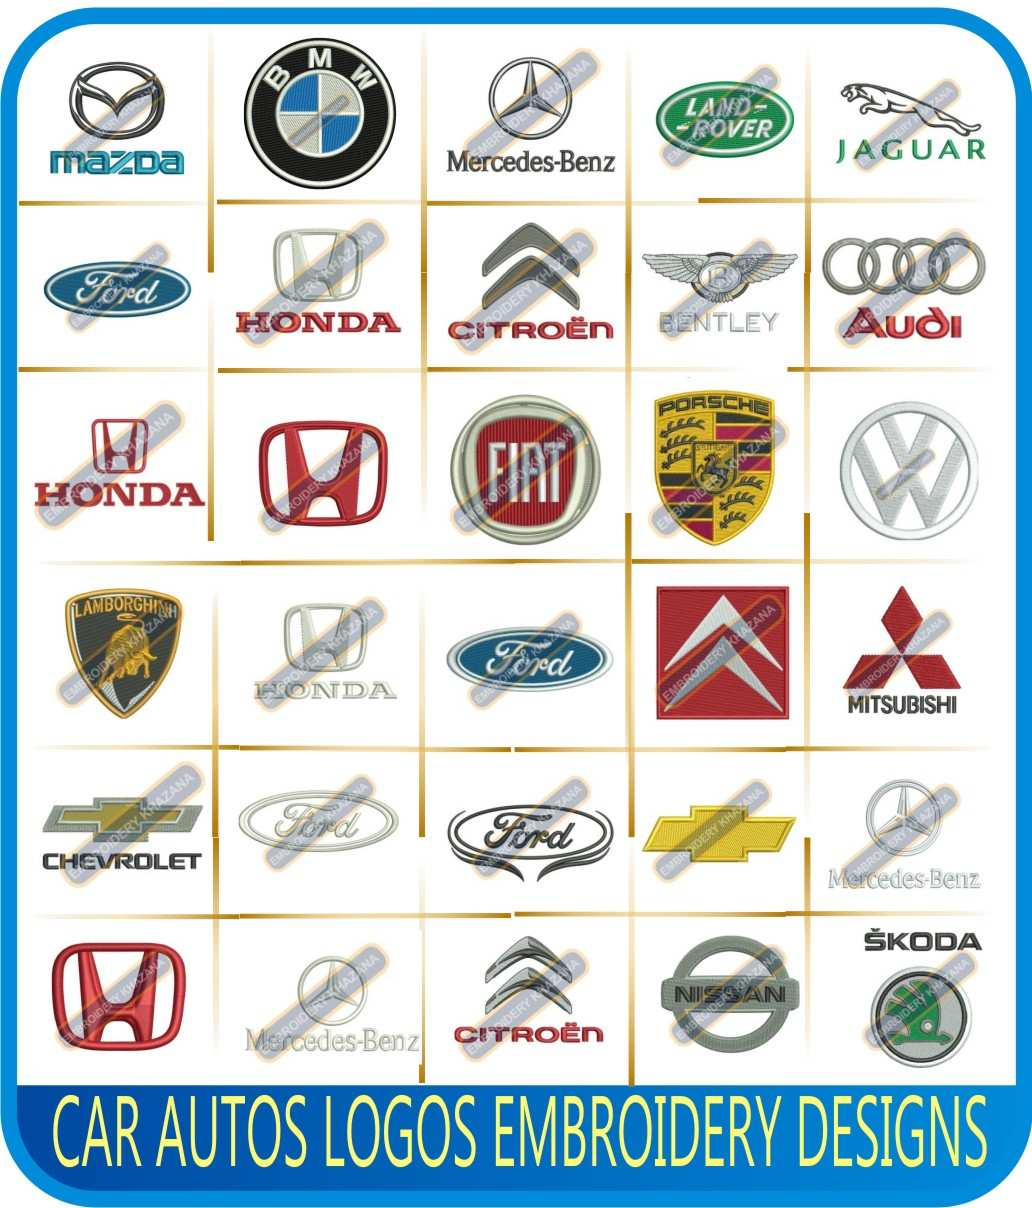 Car Auto Logos Embroidery Designs